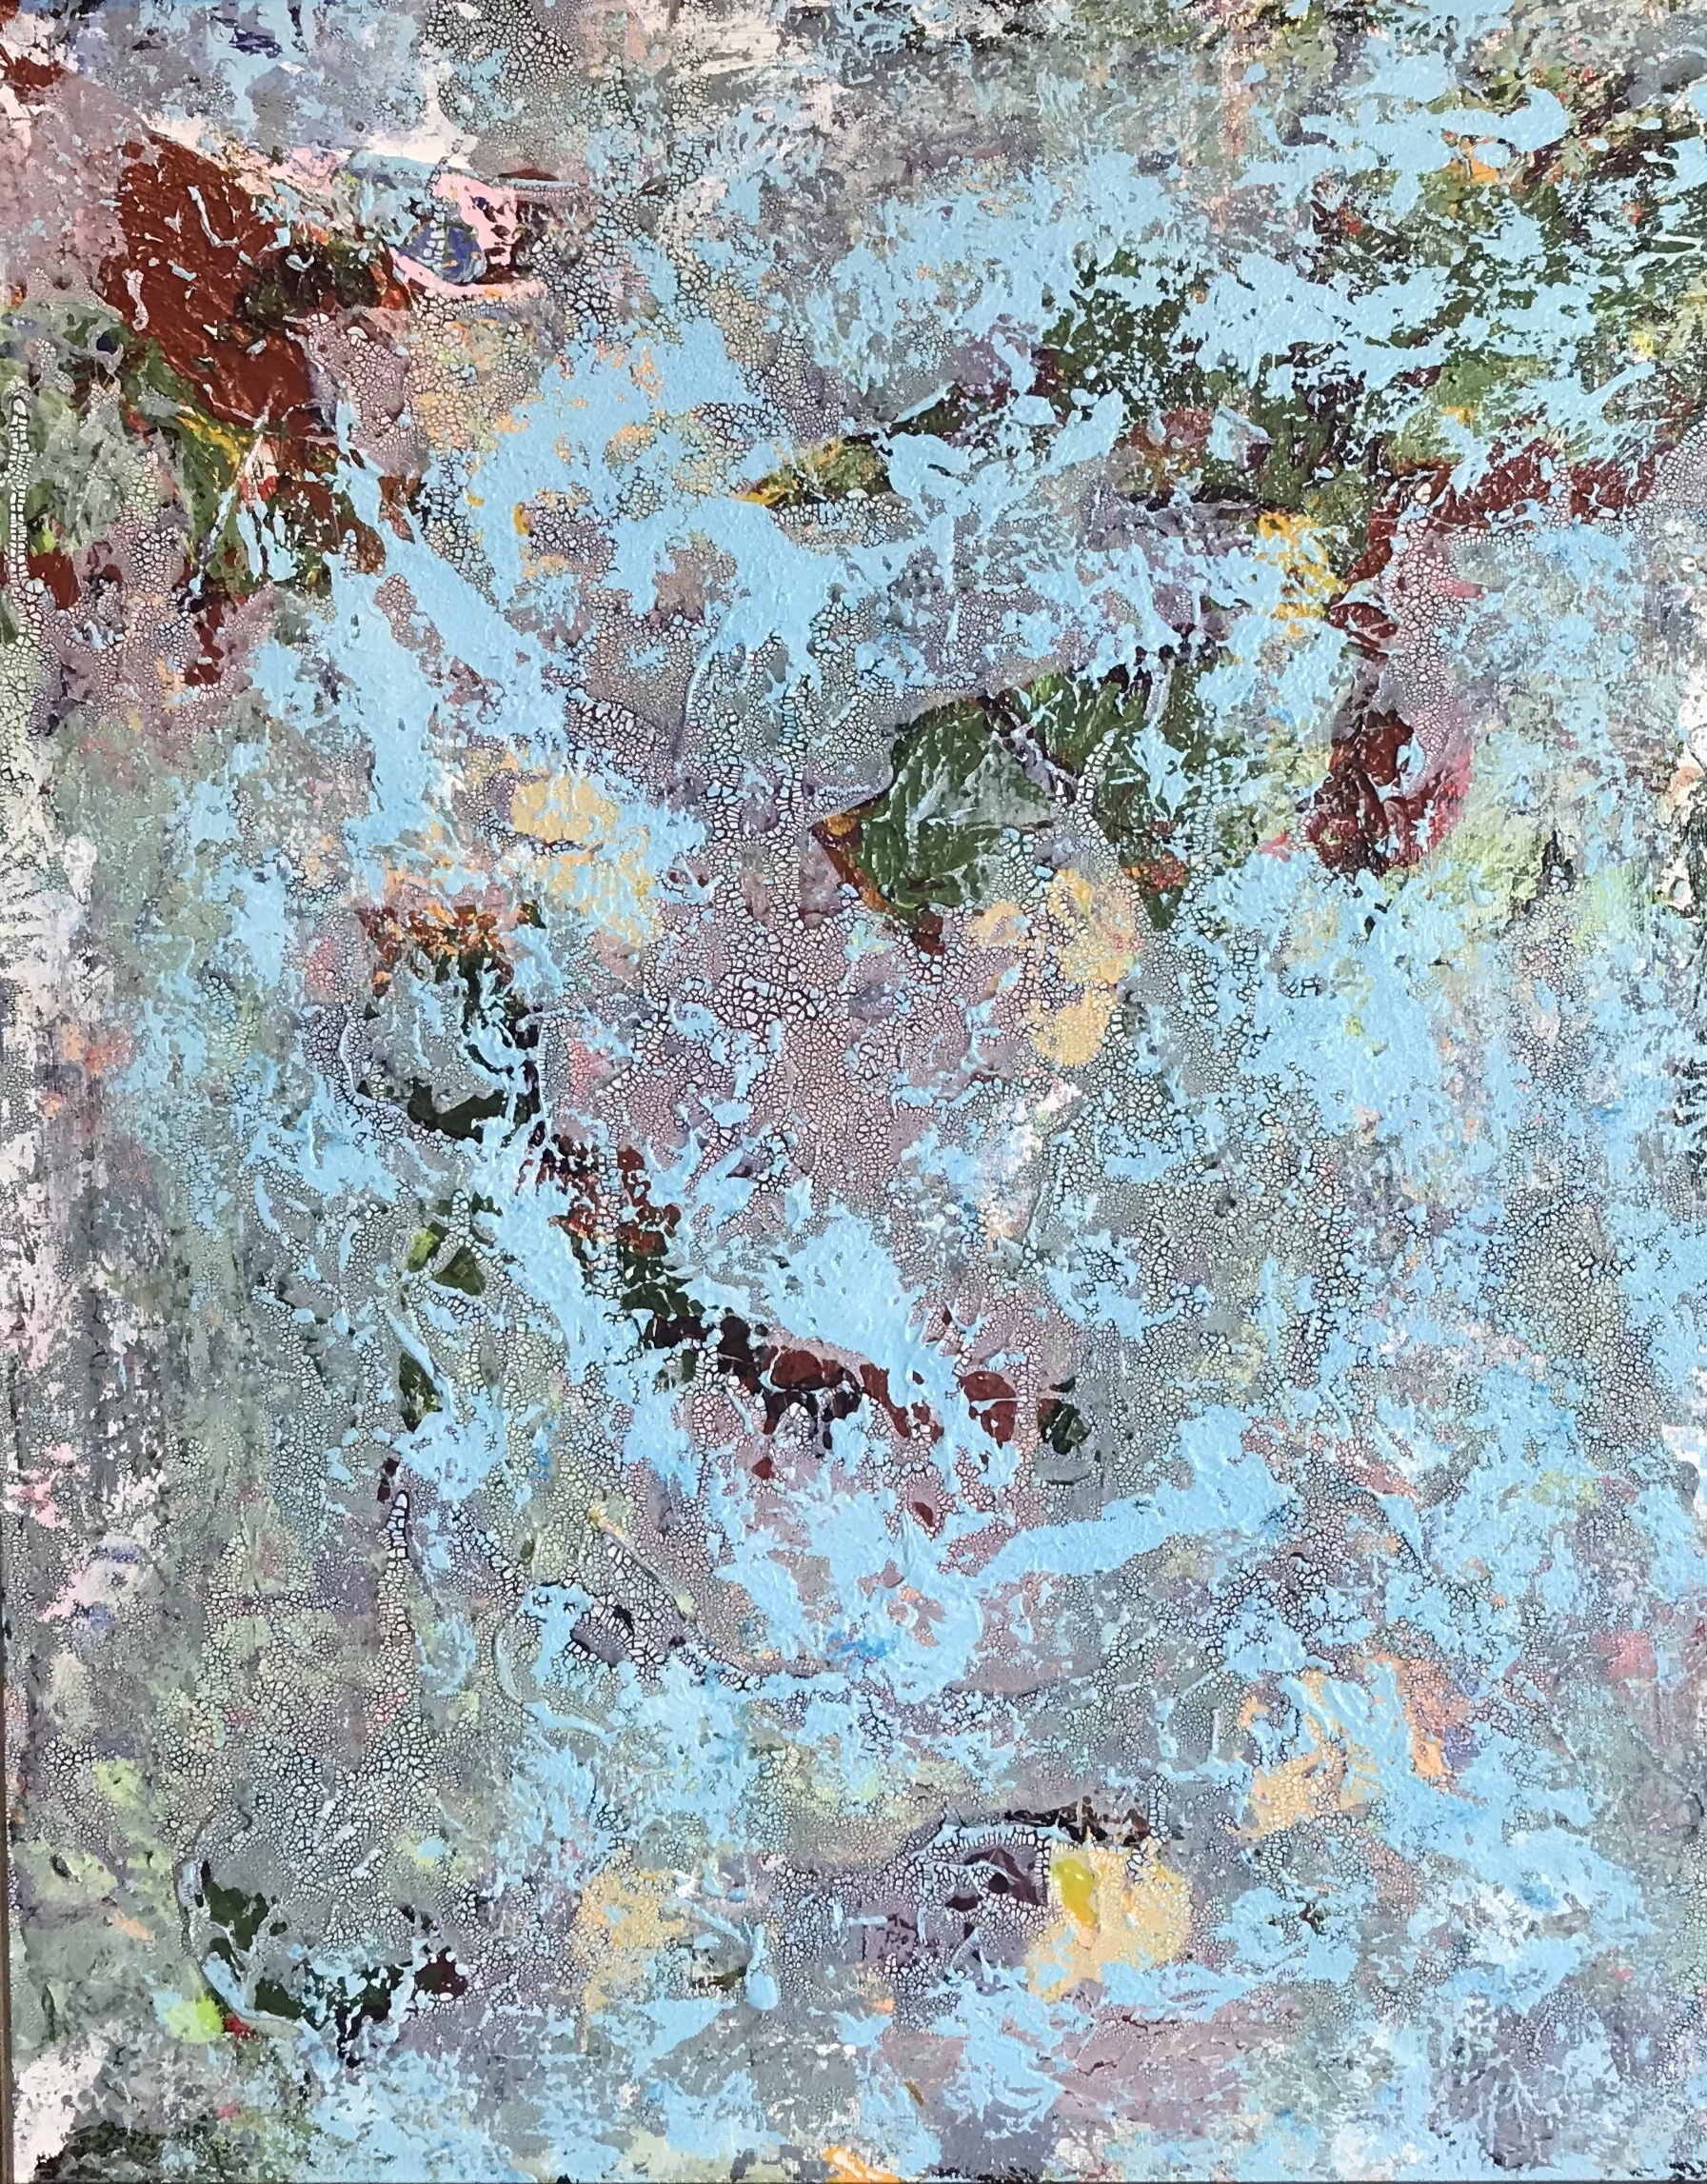 Sheila Cahill - _Palette Cleanser No. 3_ - 26 x 18 - Acrylic on canvas - 2018 - $325 .jpg